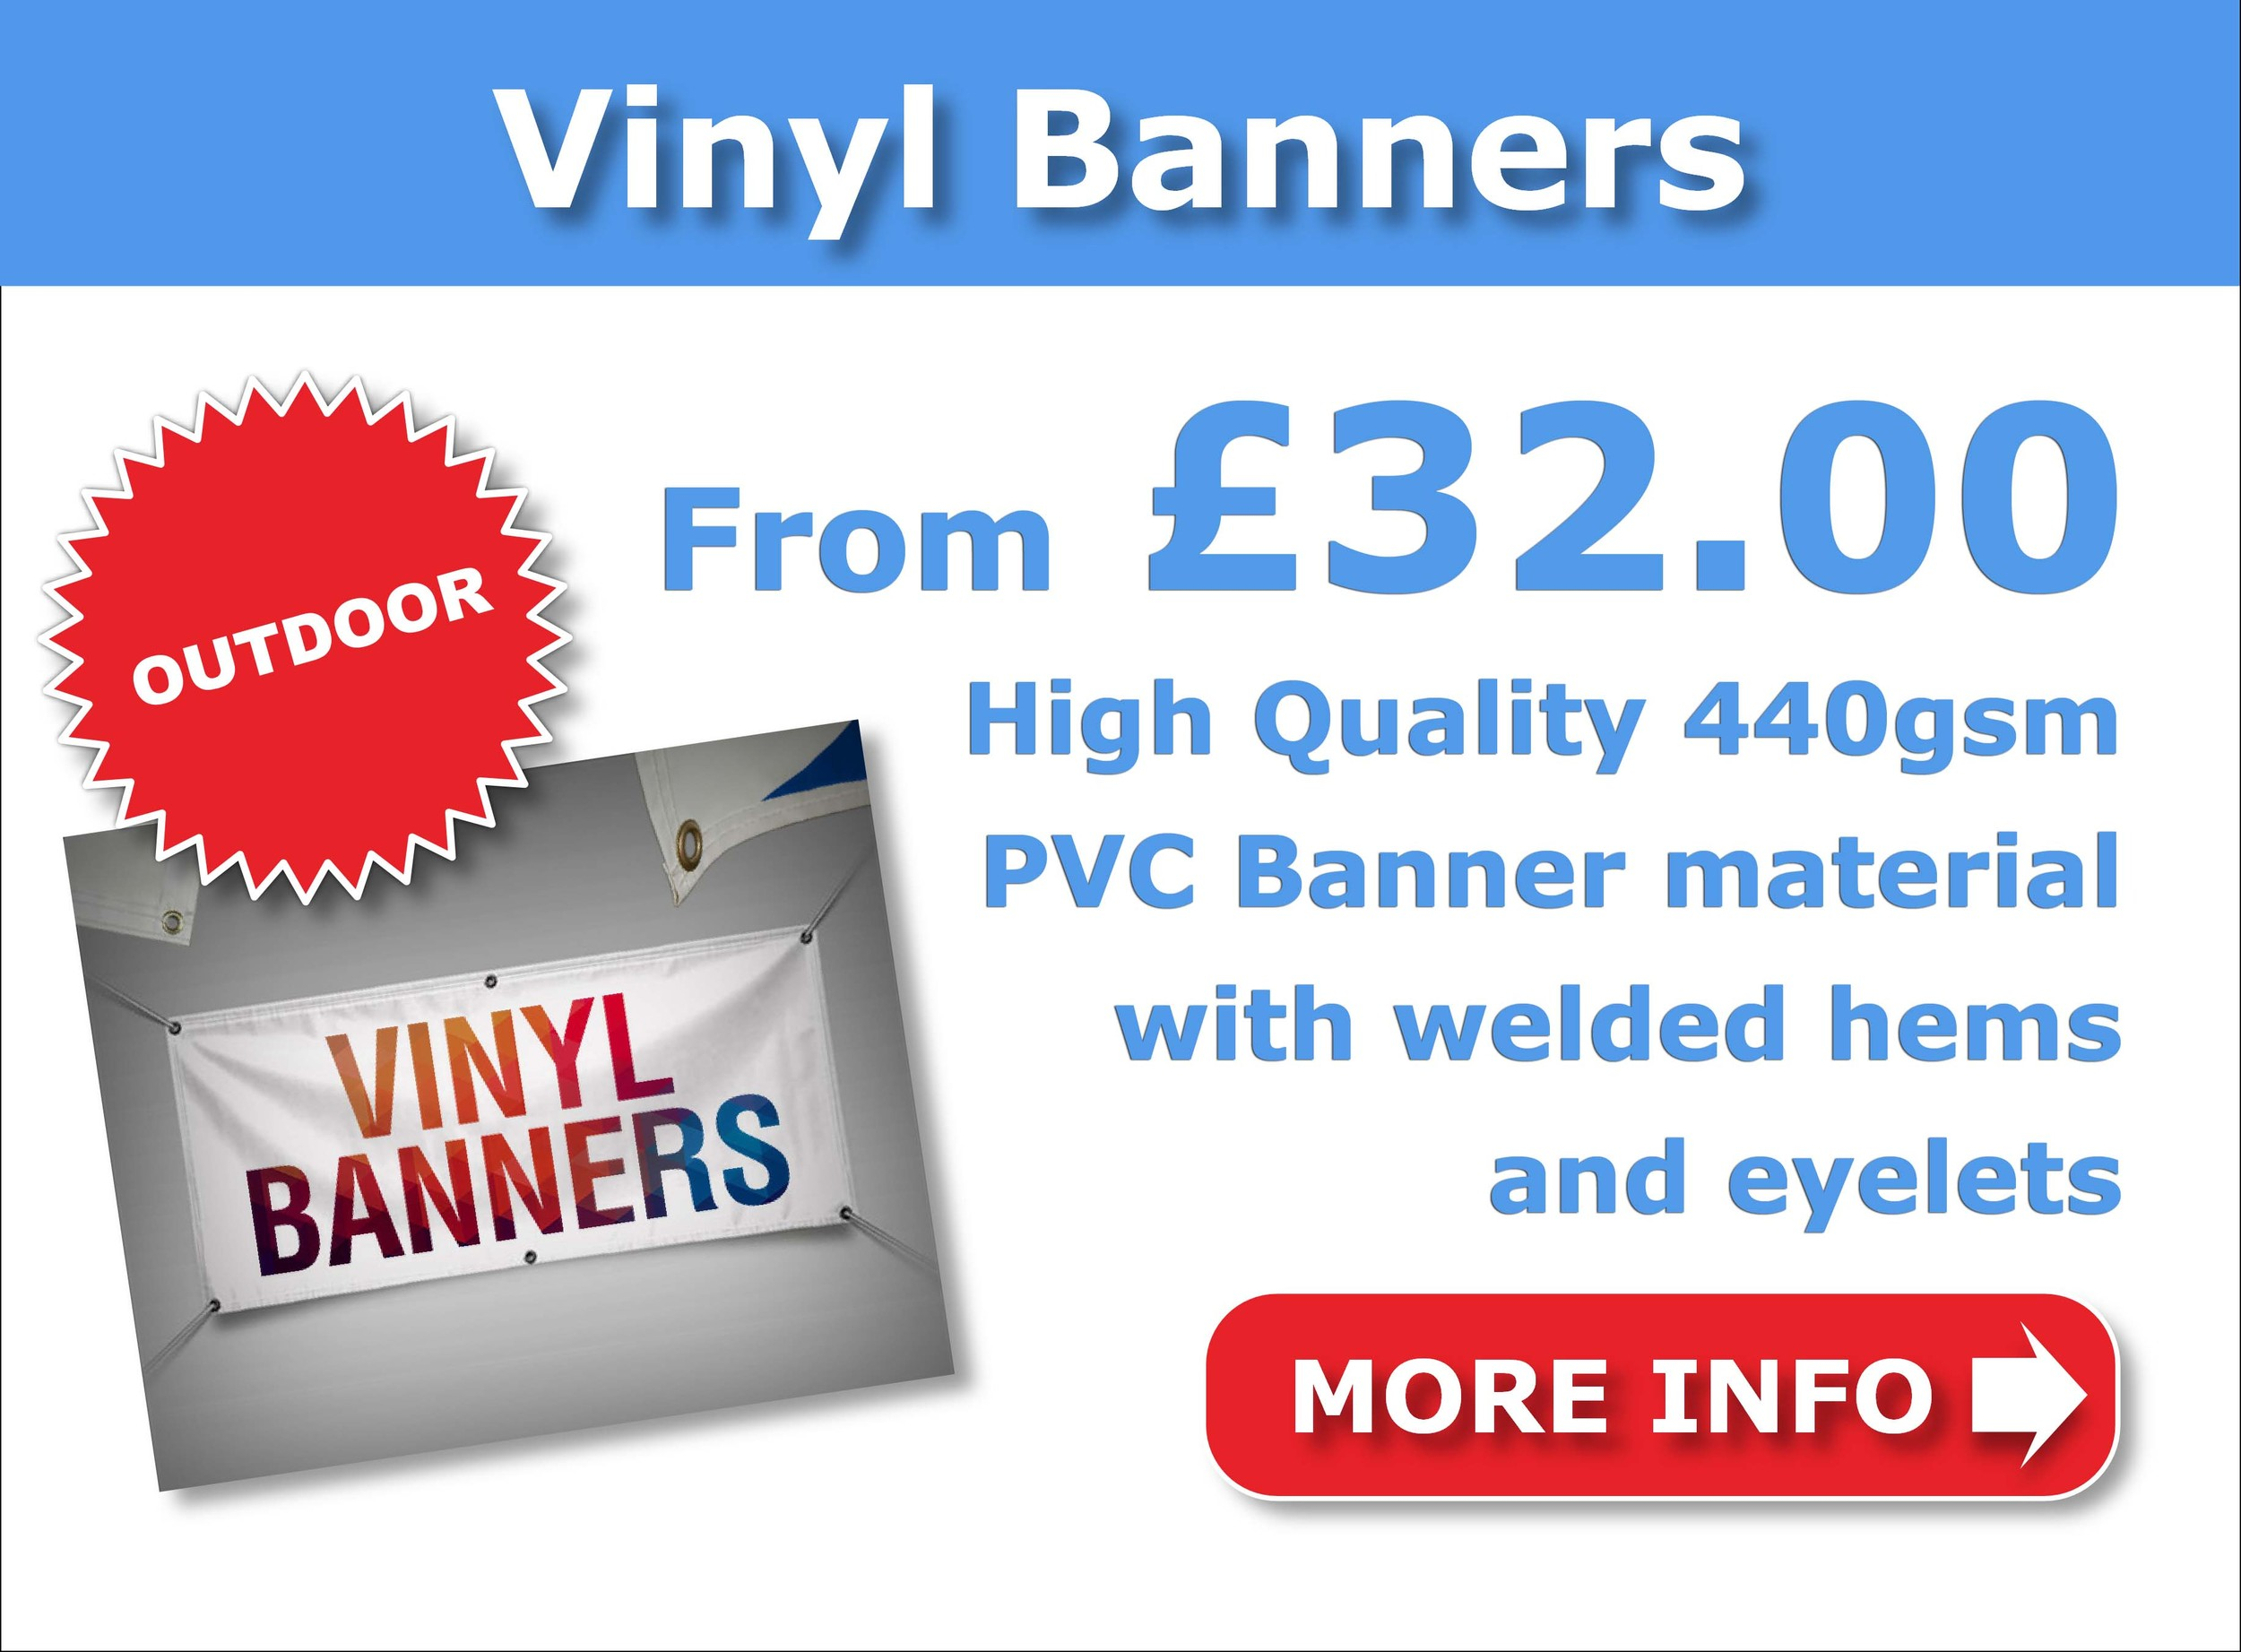 Vinyl Banners from £32.00